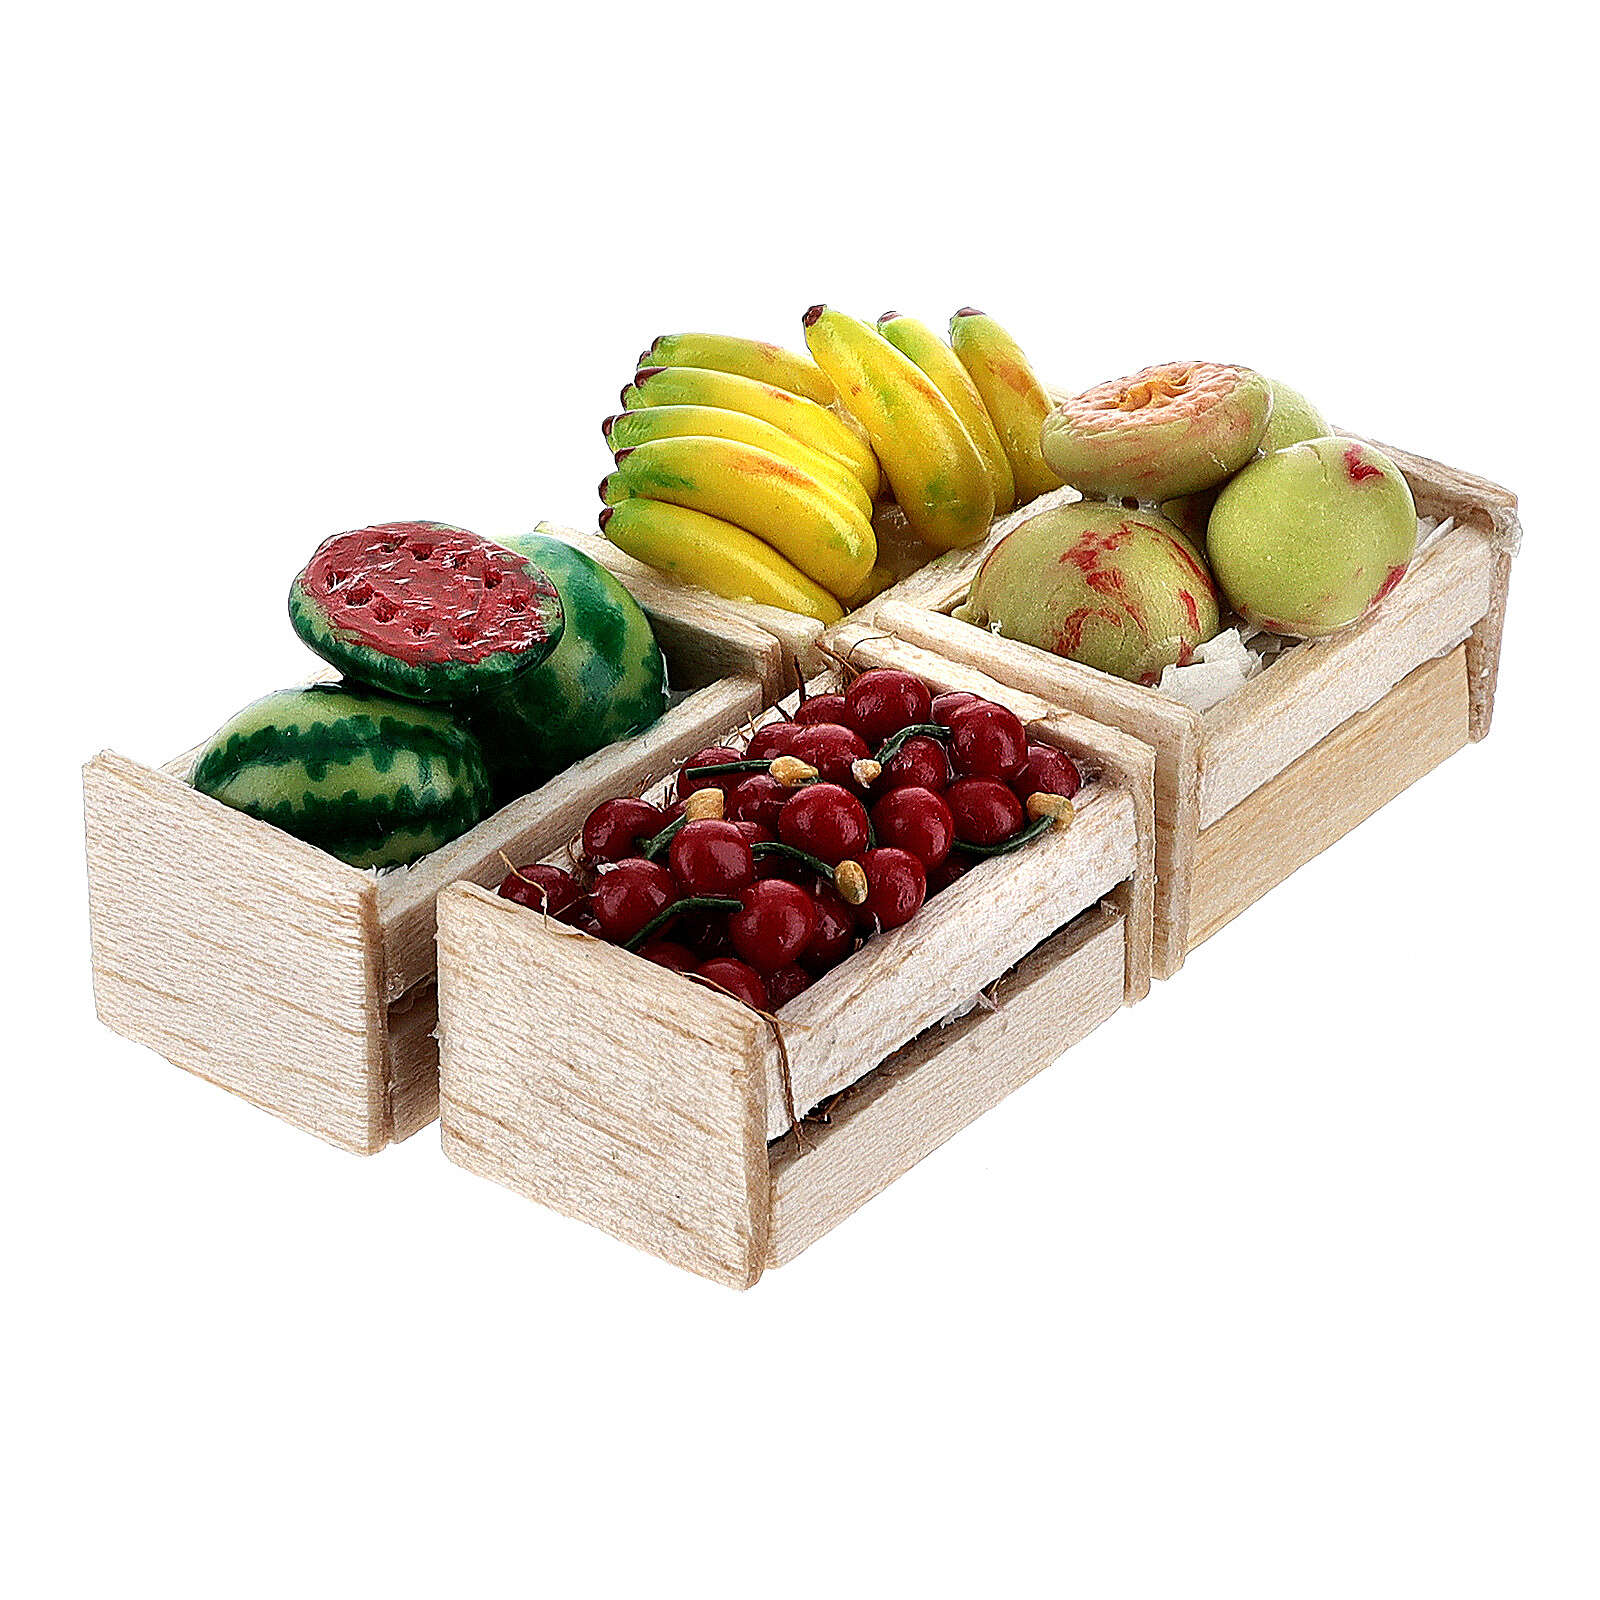 Mixed fruit boxes nativity scene 12 pieces 4